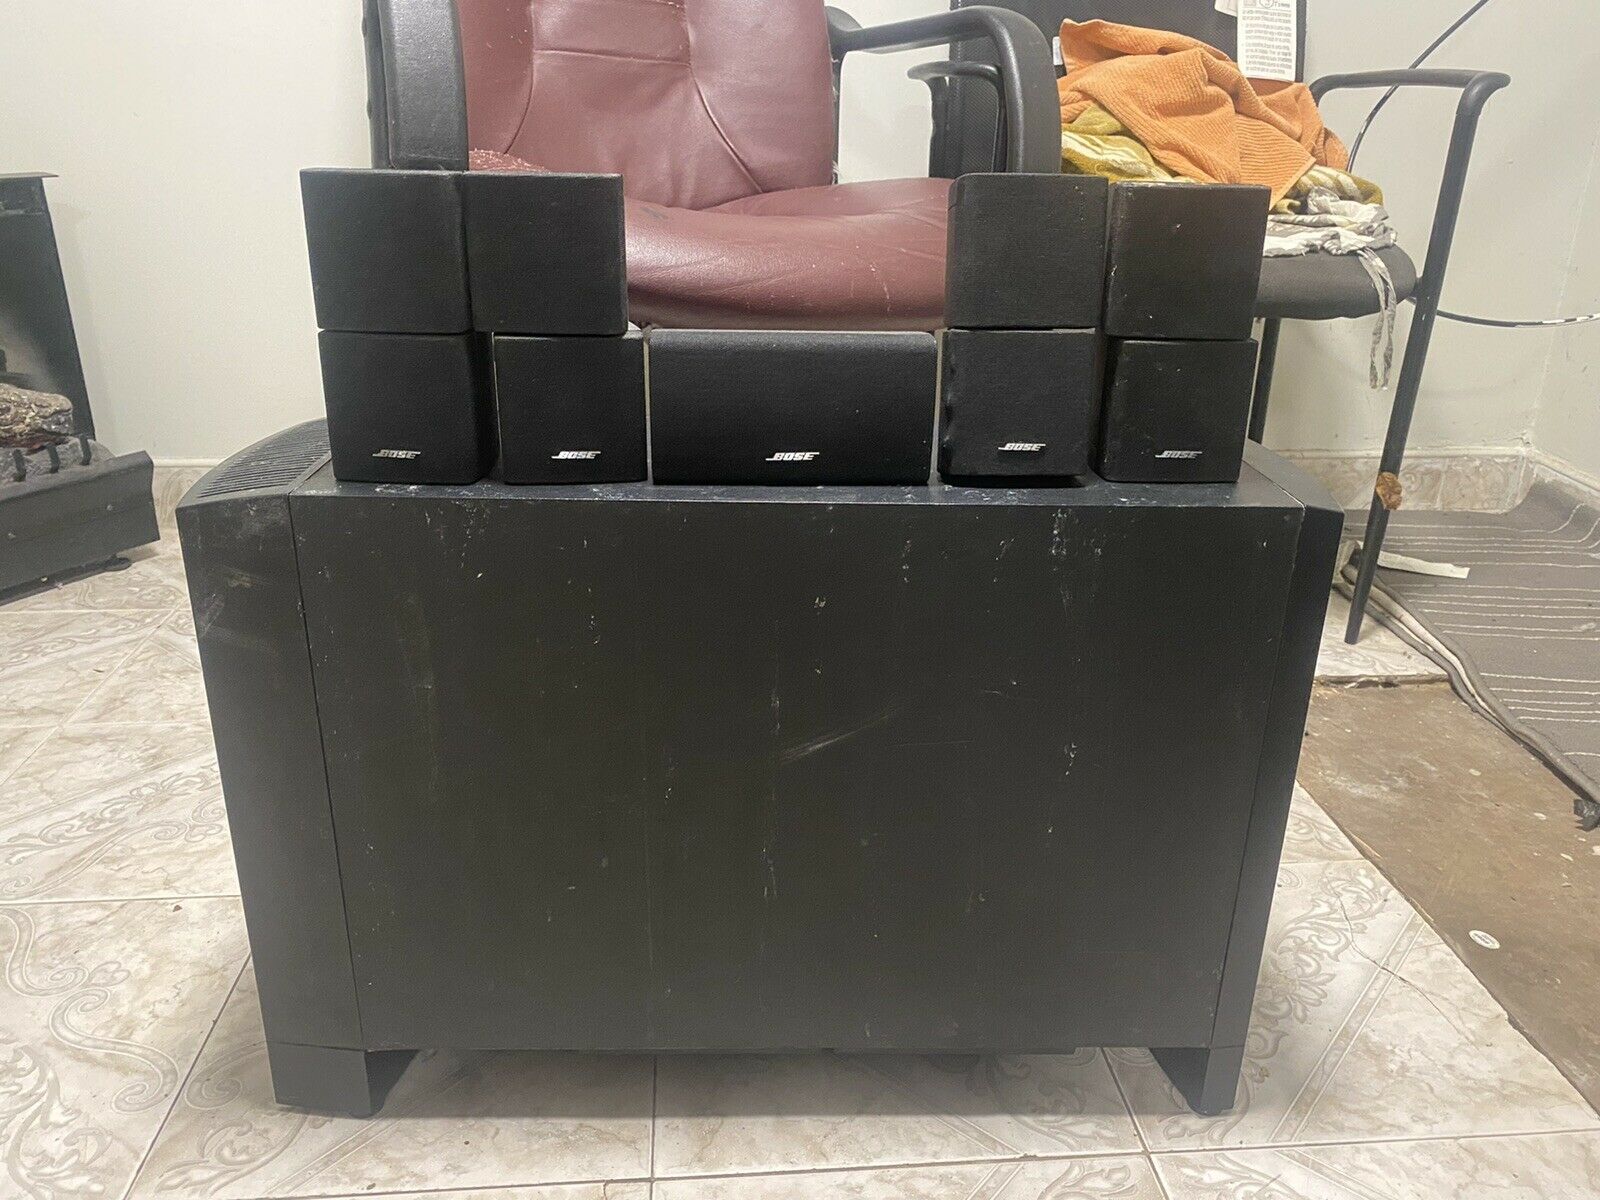 Bose 5.1 Surround Sound Home Theater System Speakers Used Black. Buy it now for 450.00